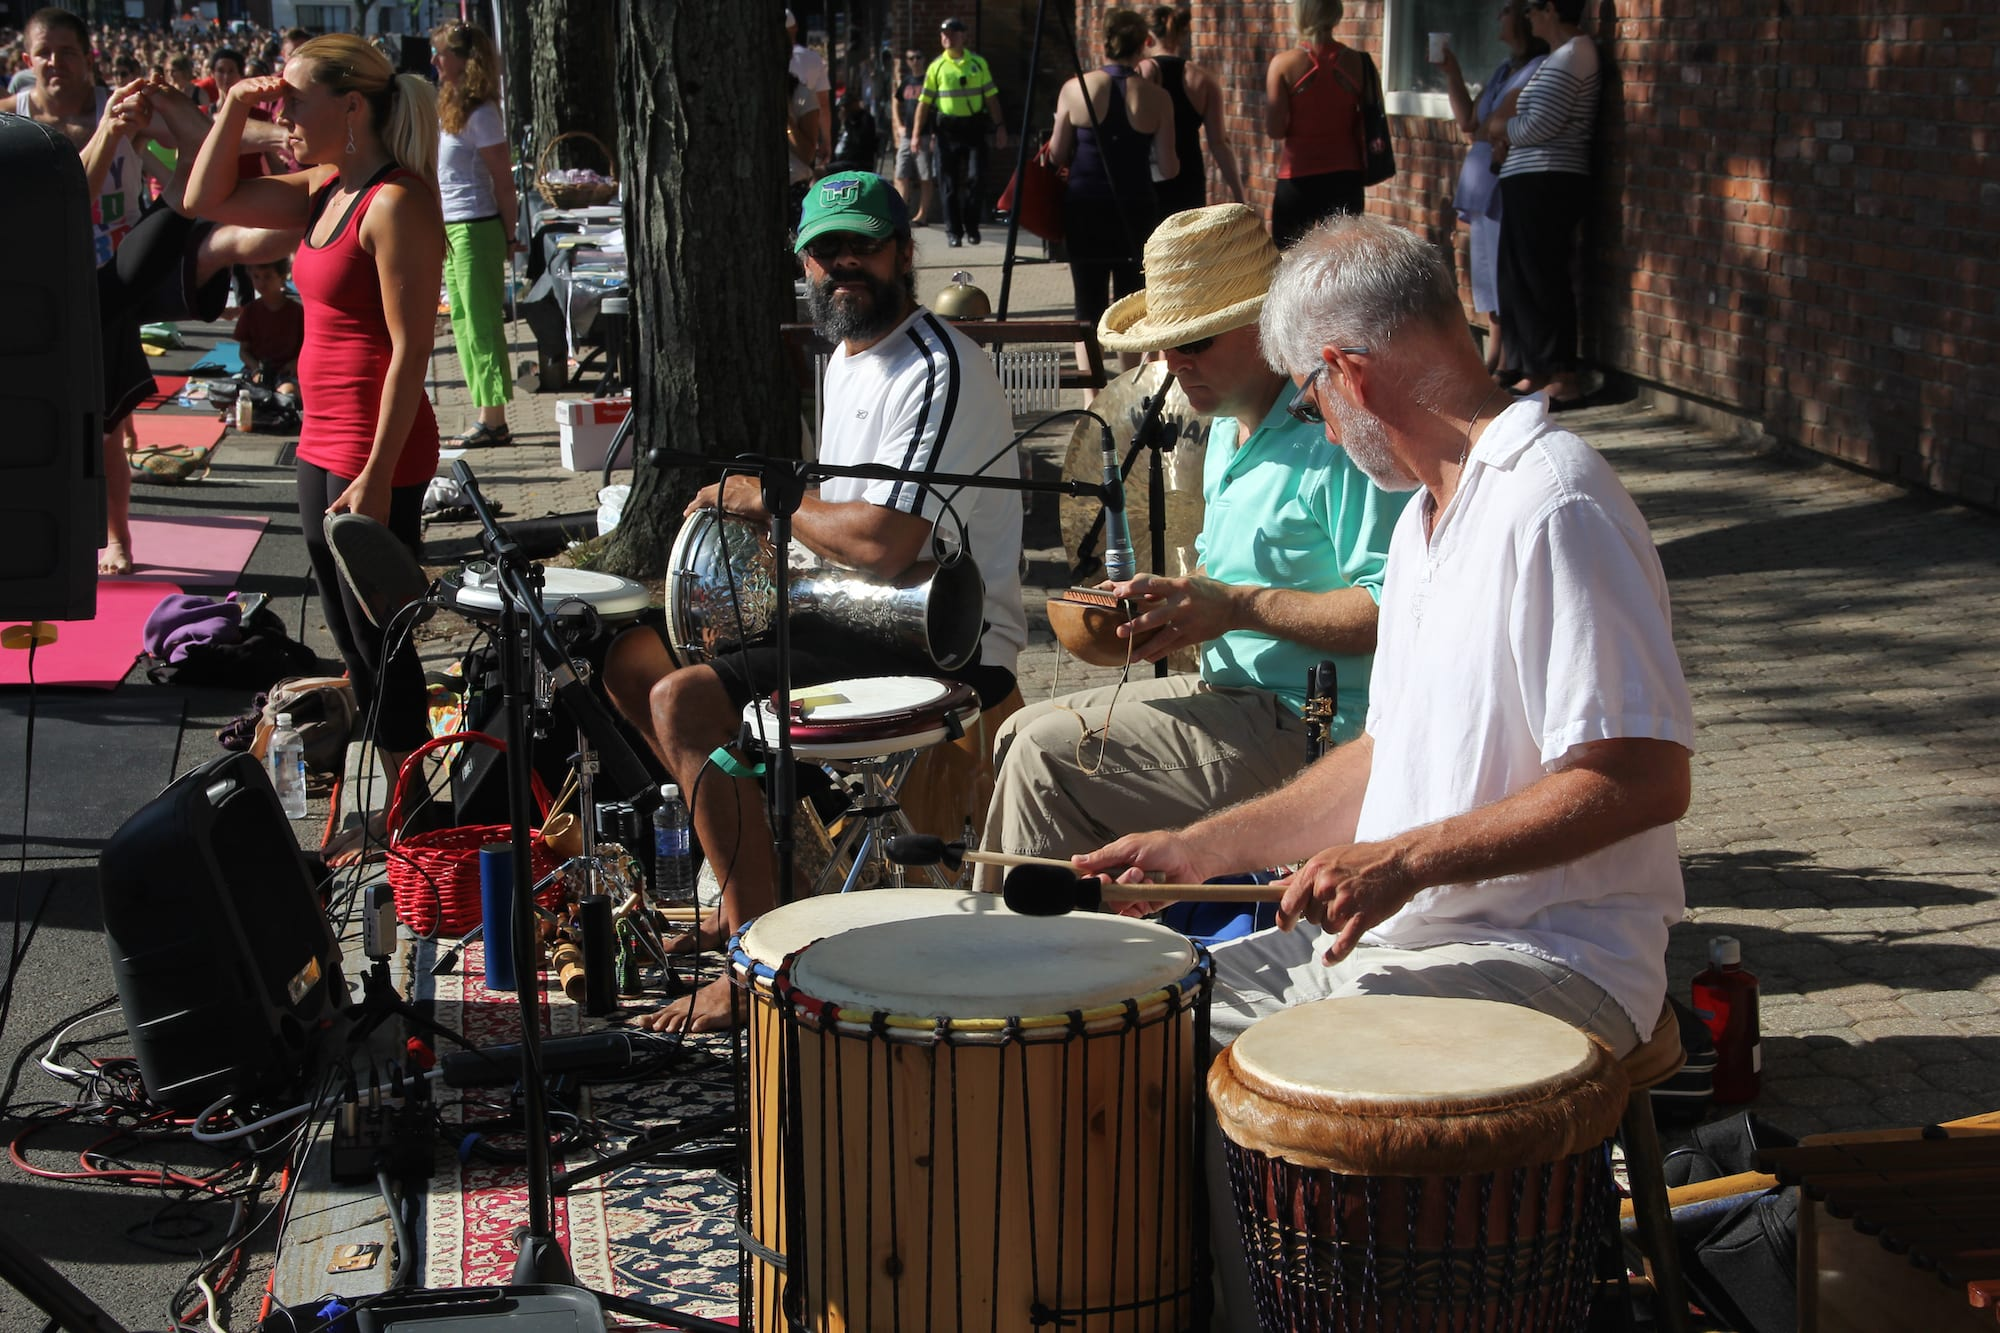 Om Street 2015, presented by West Hartford Yoga on LaSalle Road, July 25, 2015, with musical accompaniment by Hands on Drumming with Craig Norton. Photo by Amy Melvin